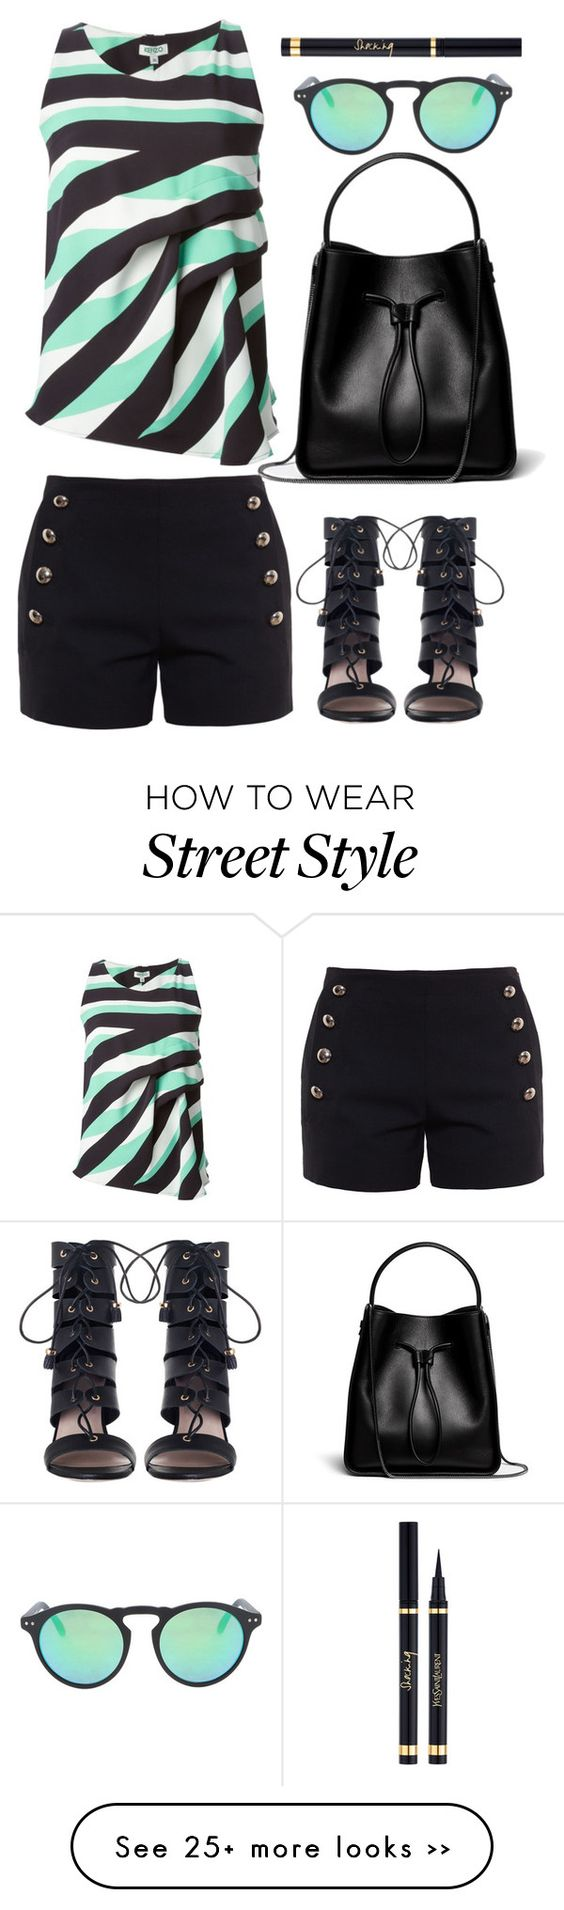 """street style"" by ecem1 on Polyvore featuring Chloé, Kenzo, Zimmermann, 3.1 Phillip Lim and Spektre"